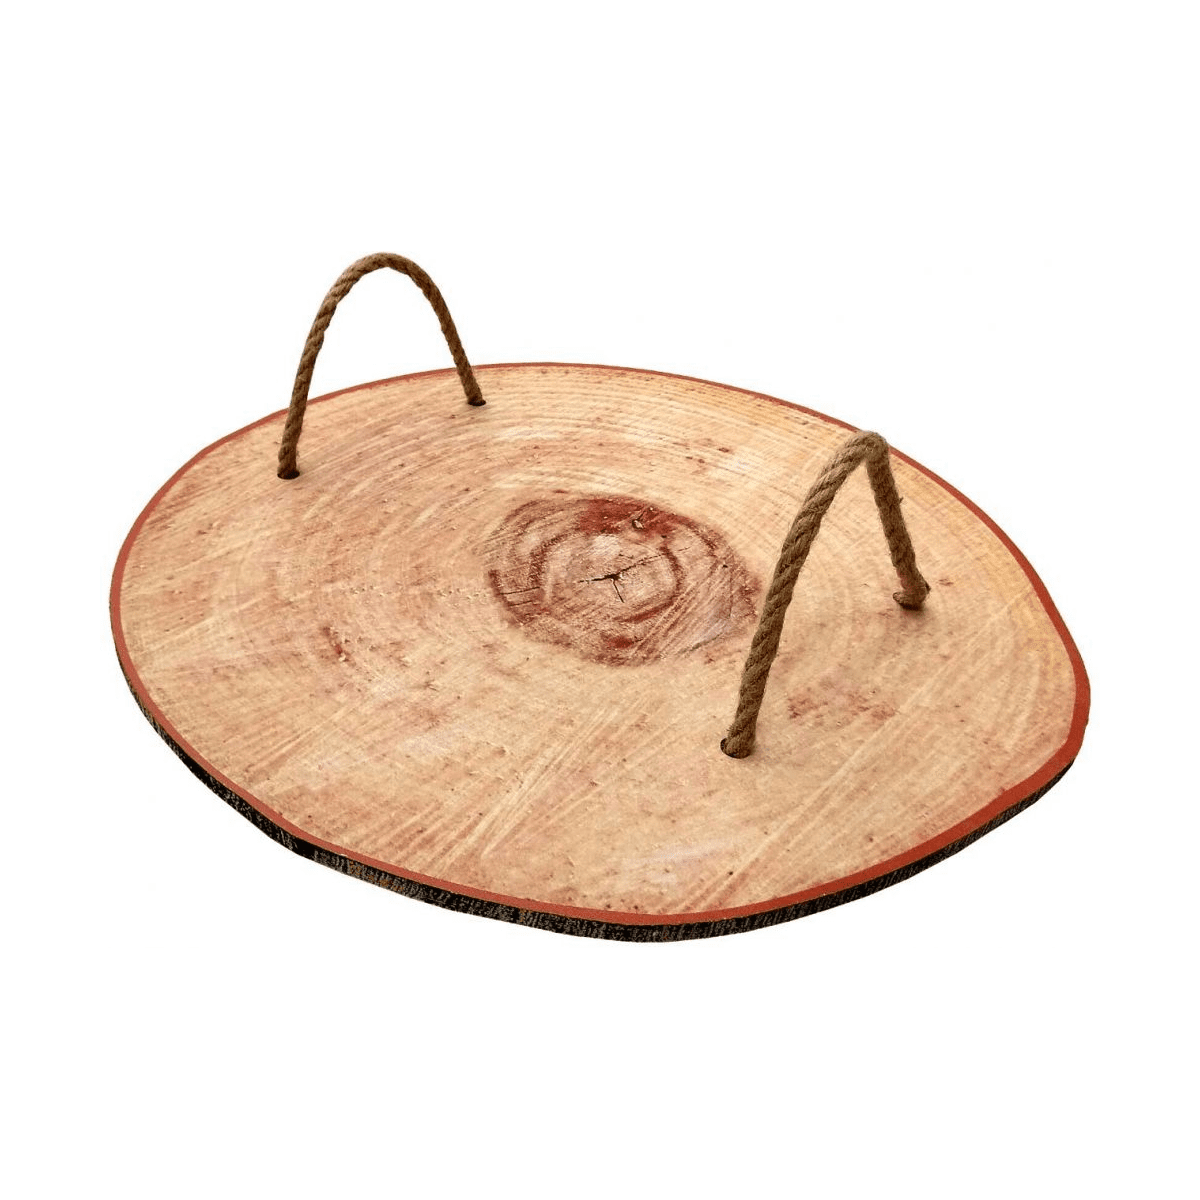 Round Wooden Serving Tray with Rope Handle